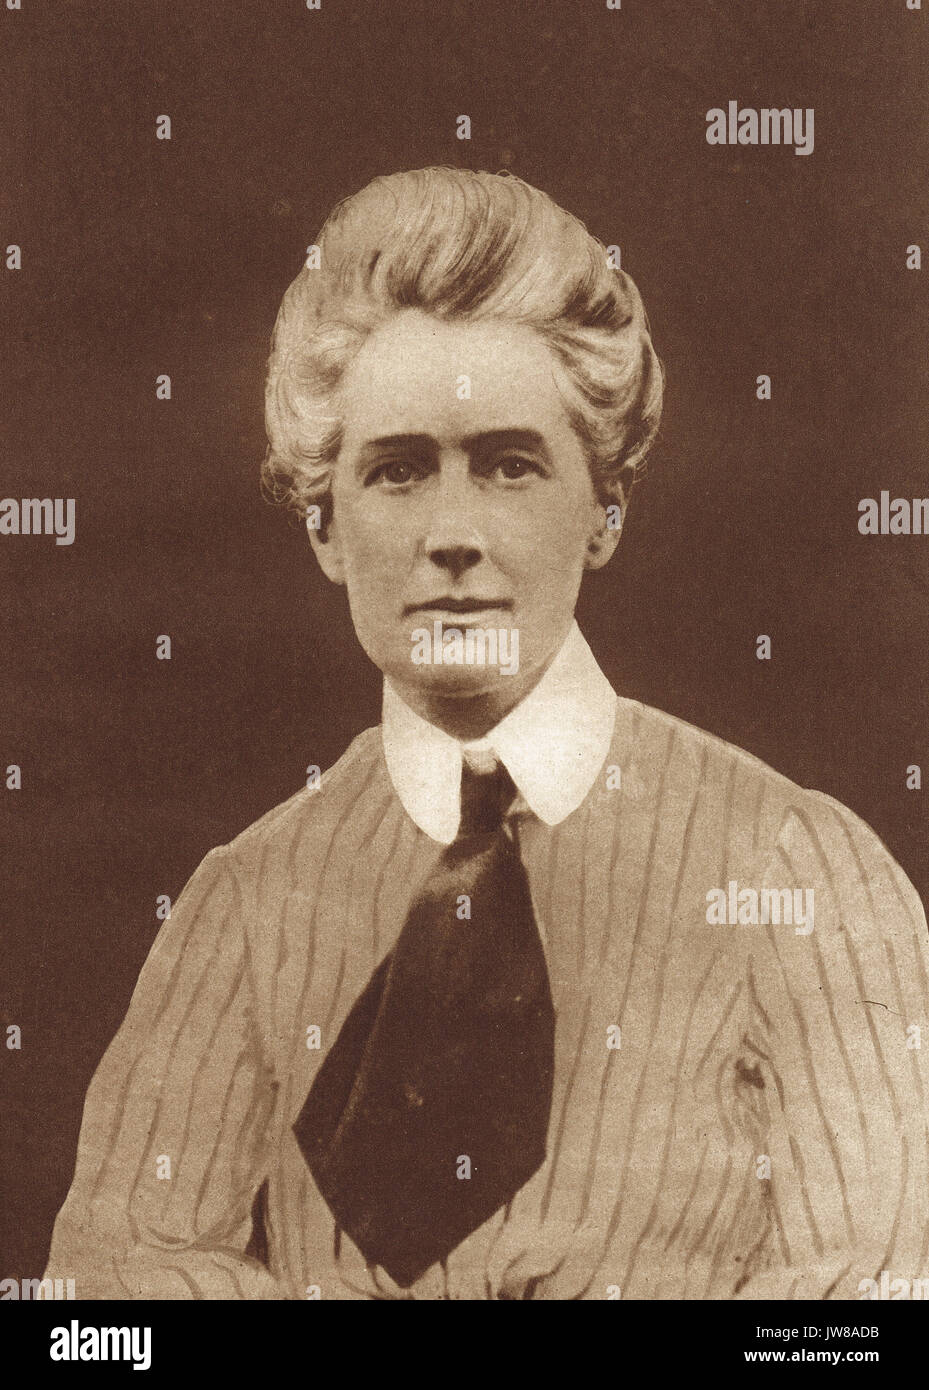 Nurse Edith Cavell Heroine and Martyr - Stock Image